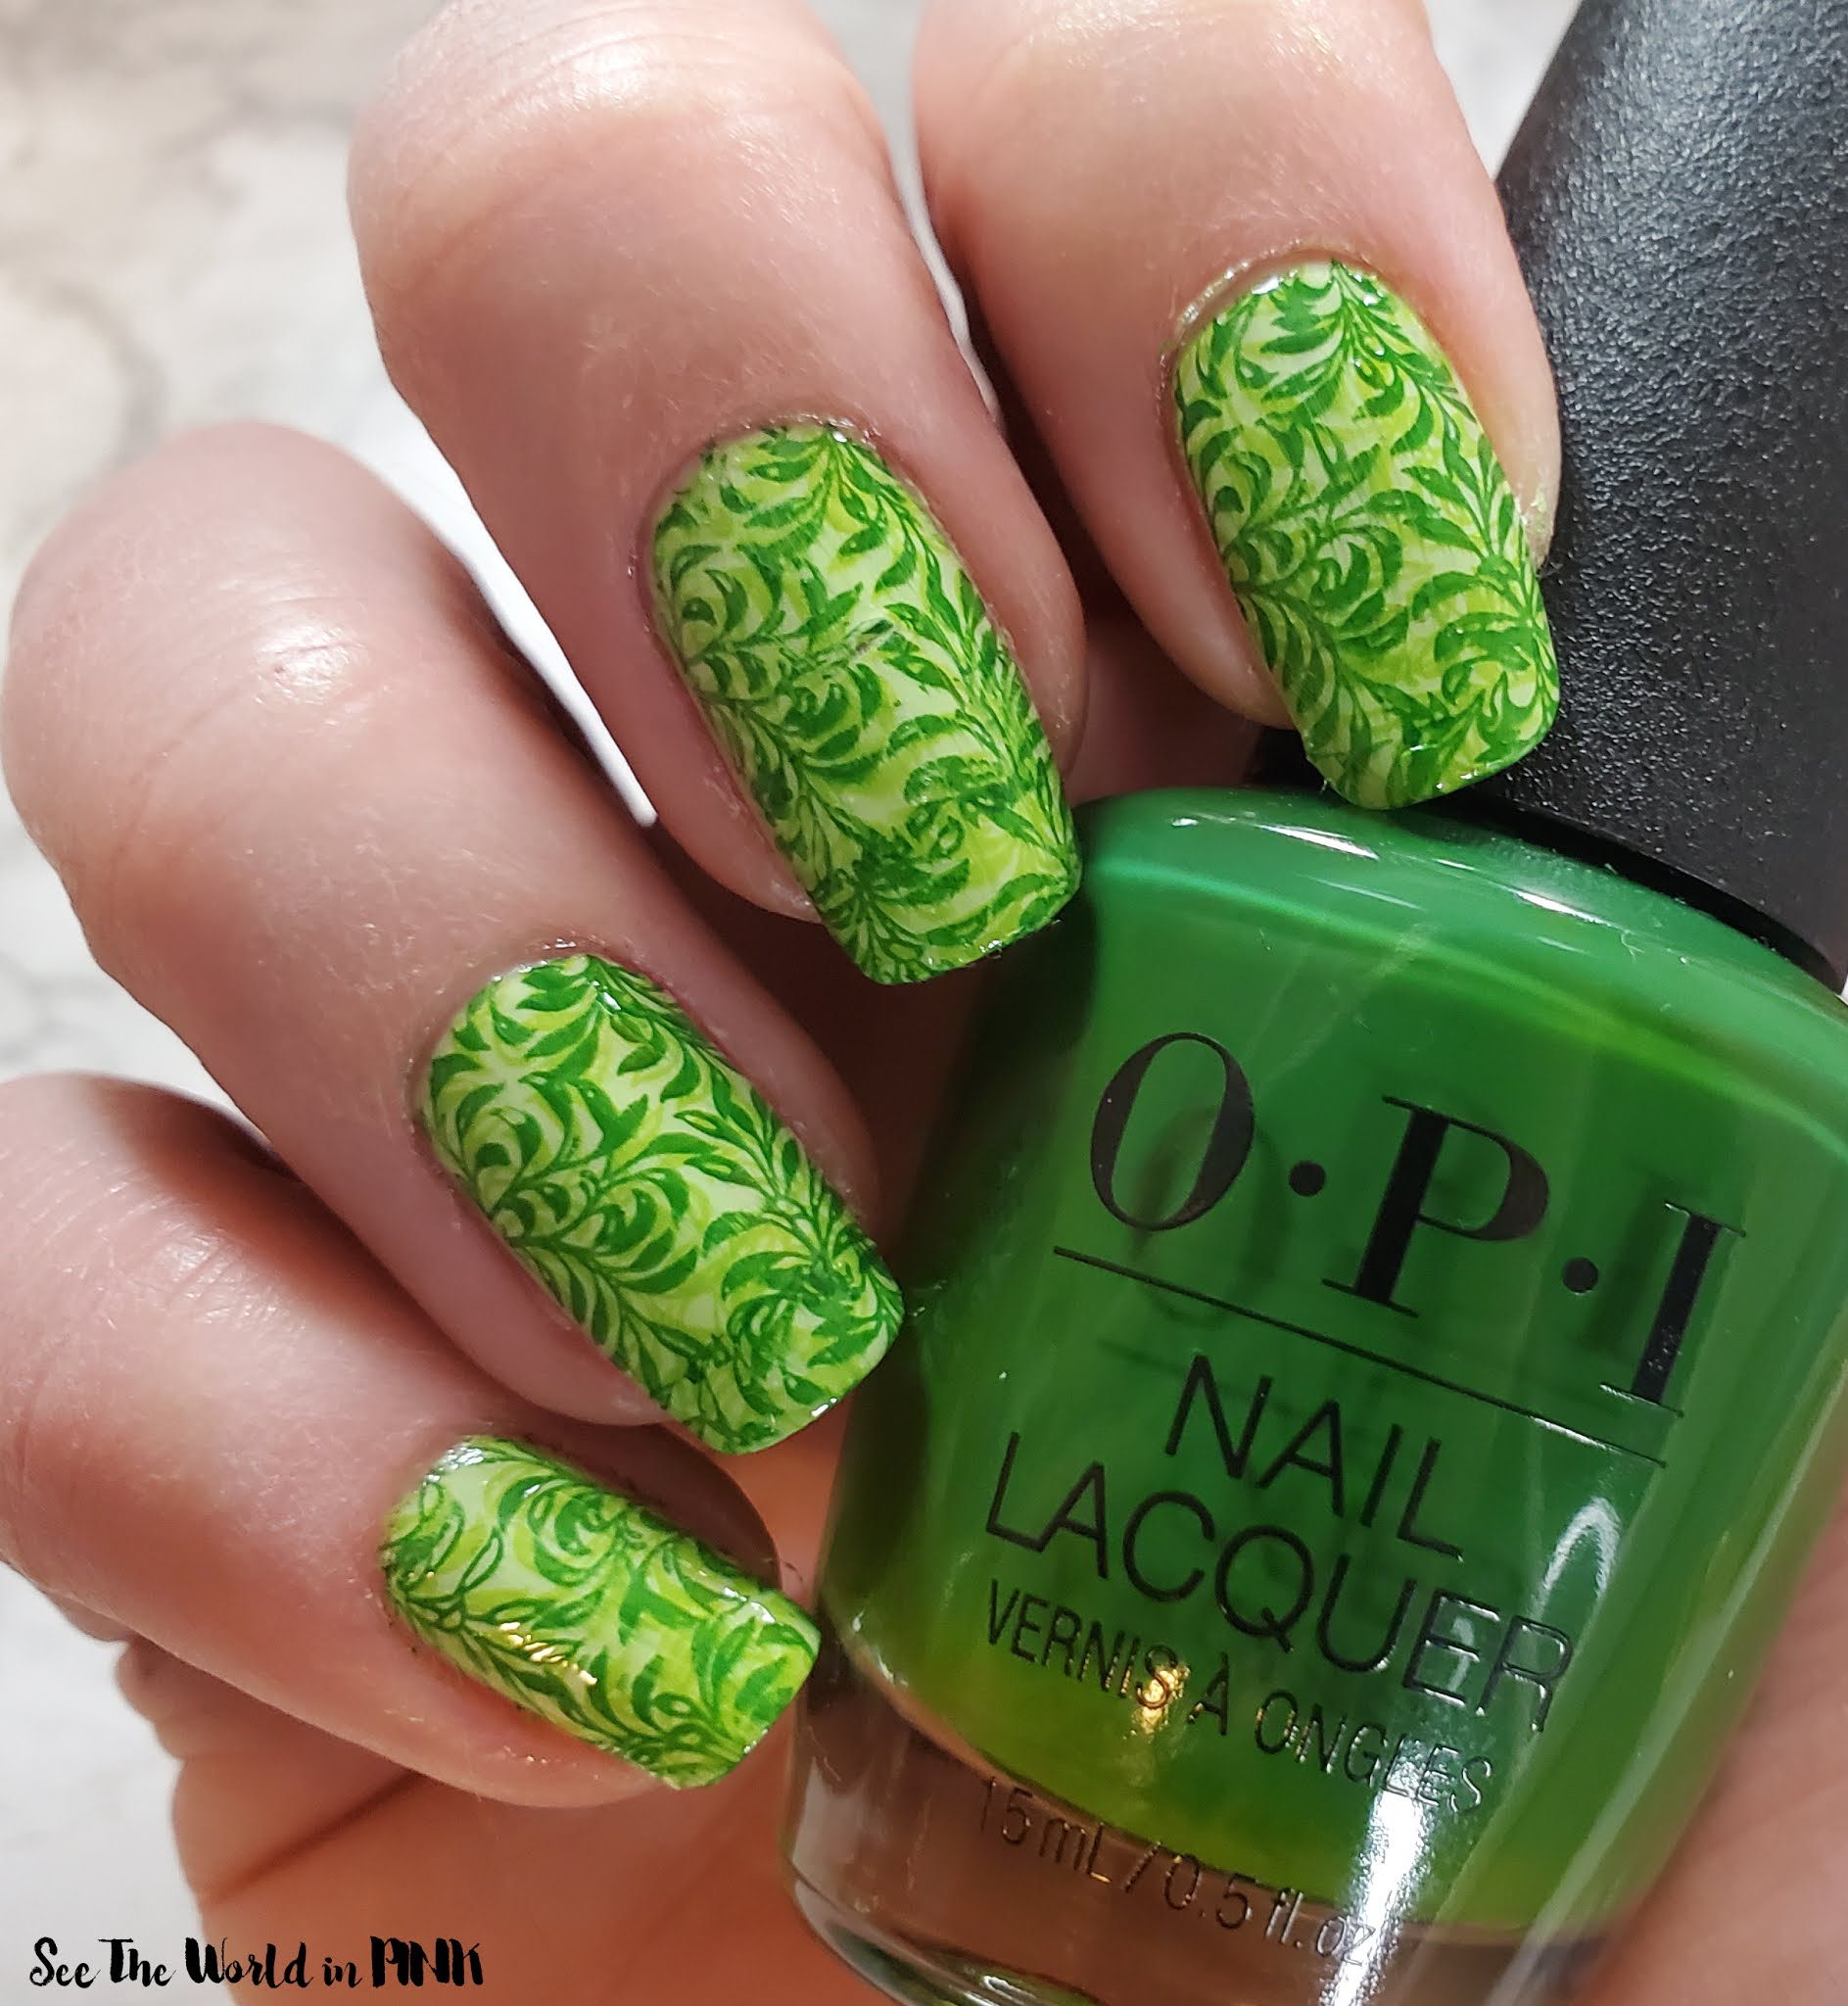 Manicure Monday - Green Foliage Stamped Nails